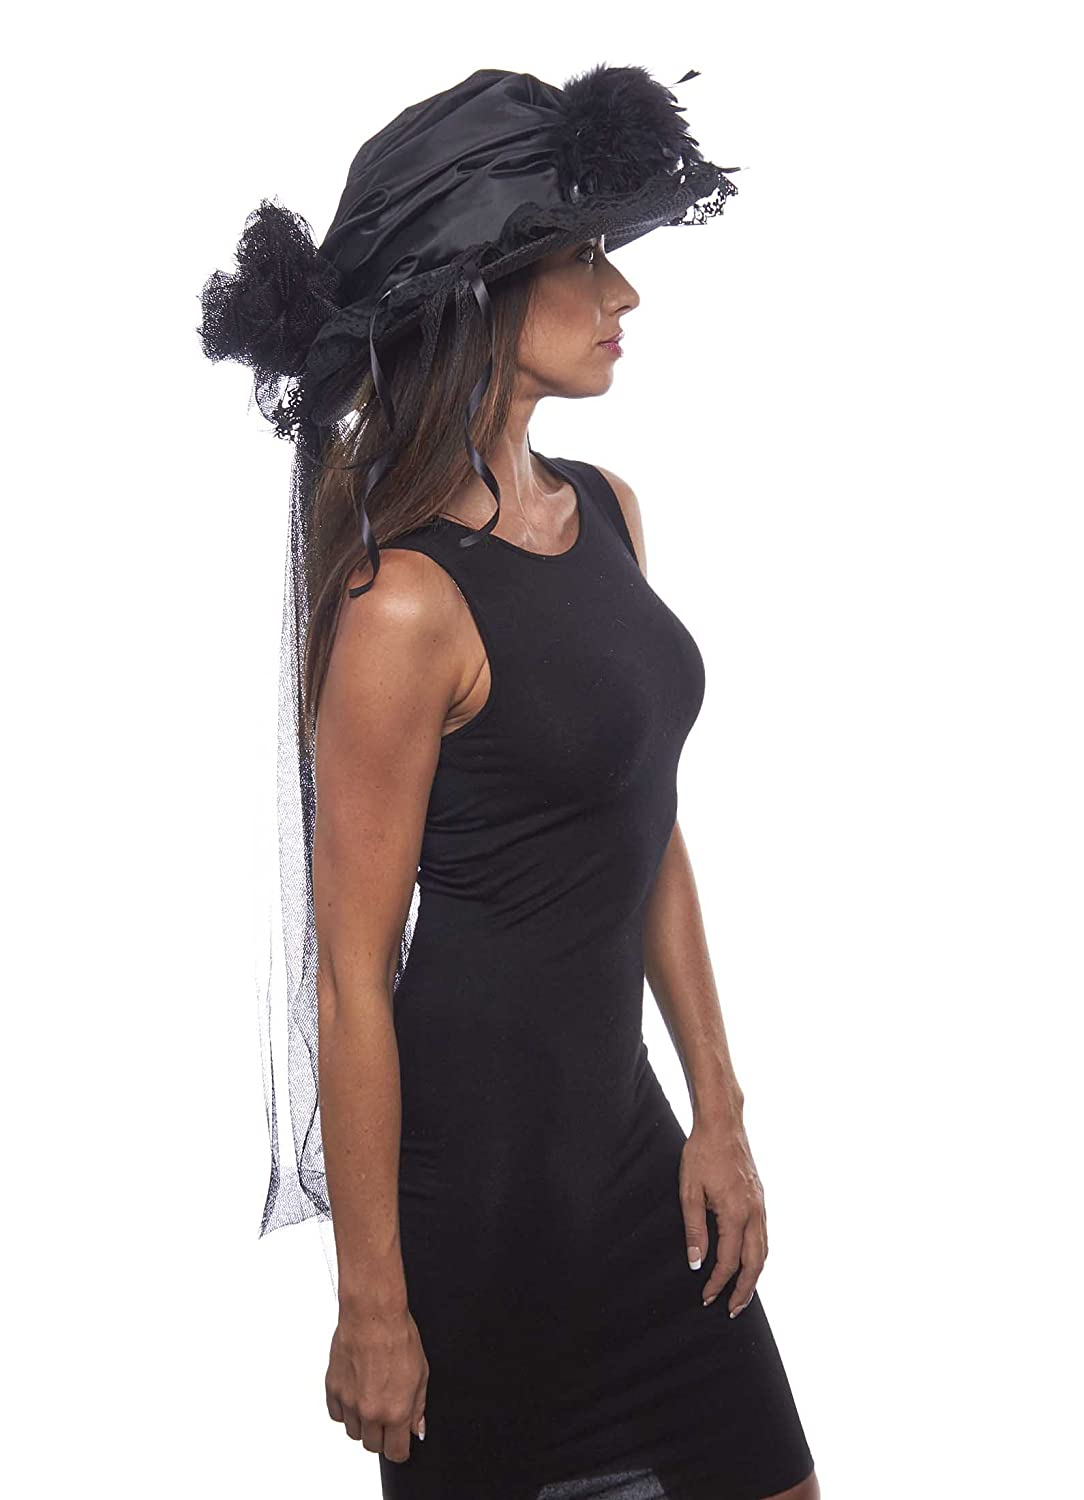 Victorian Style Hats, Bonnets, Caps, Patterns Elegant Black Victorian Touring Hat $64.99 AT vintagedancer.com